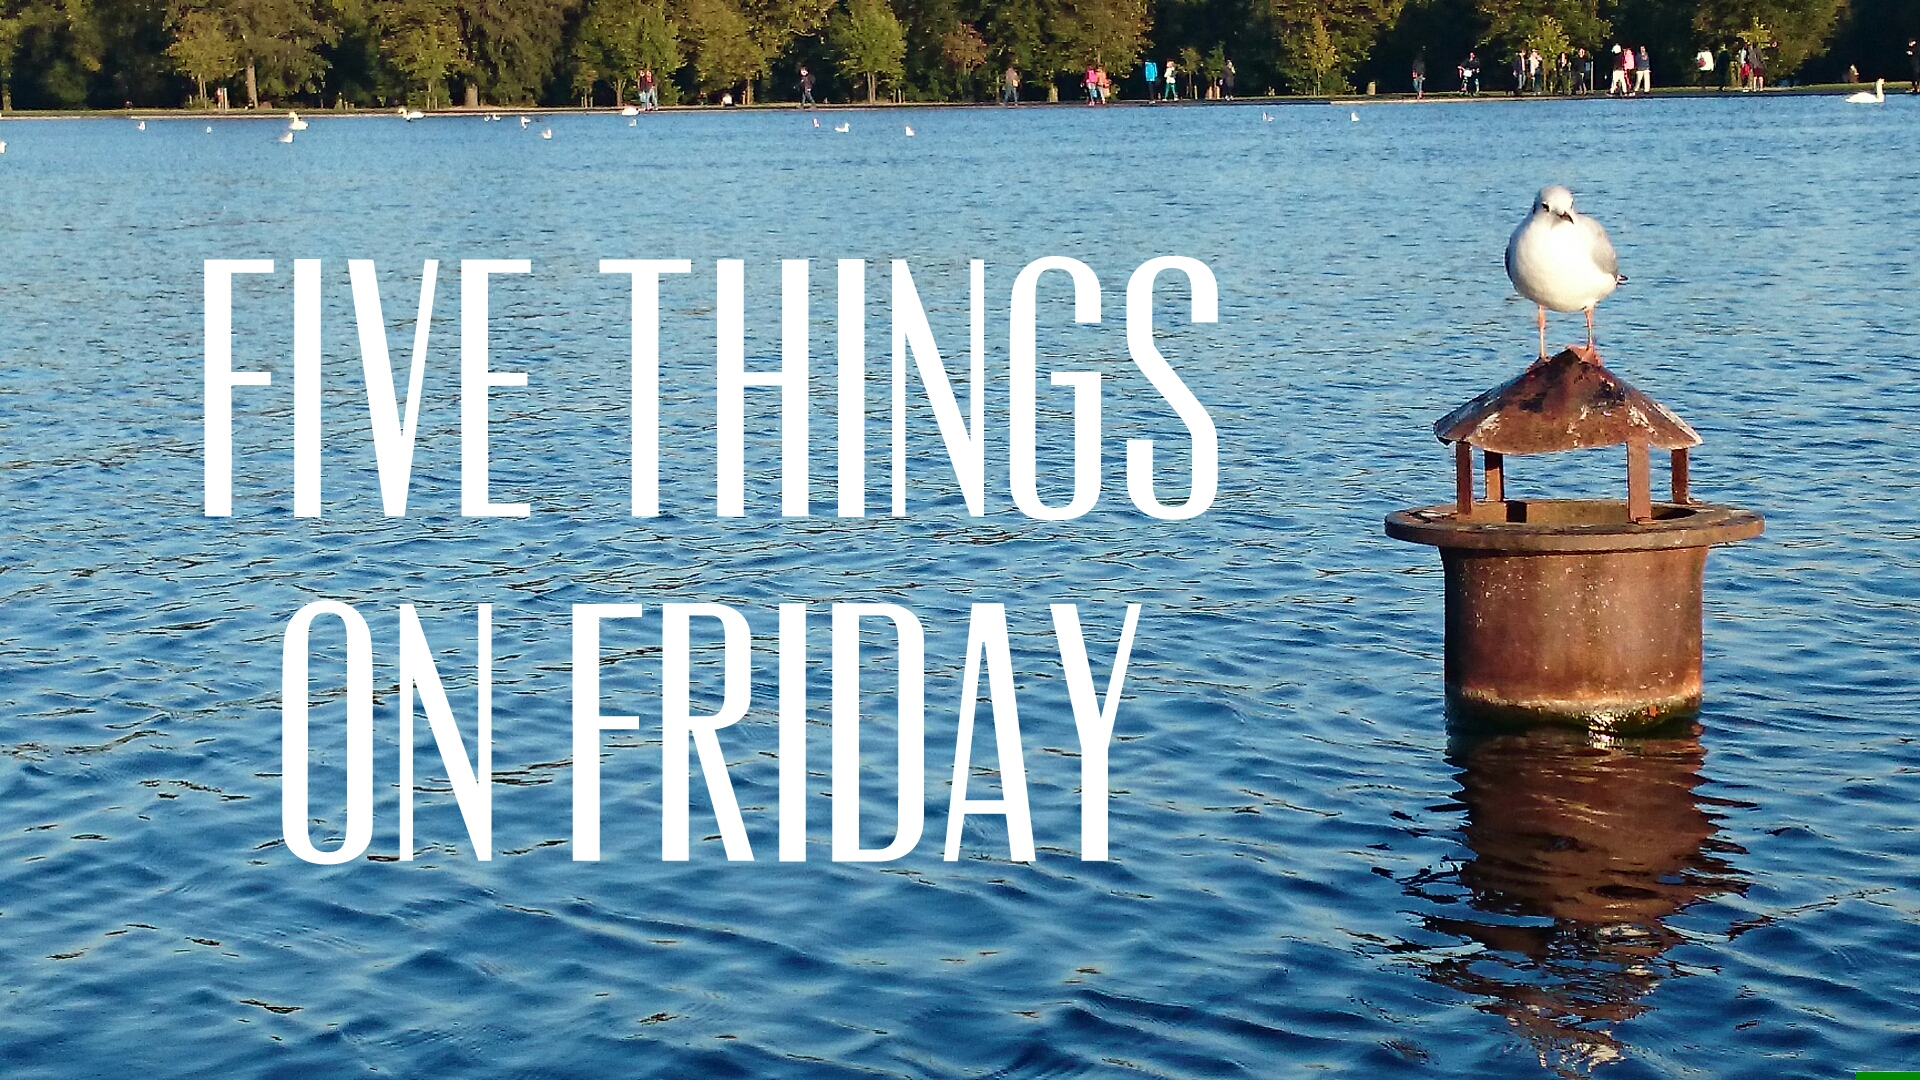 Five things on Friday #93